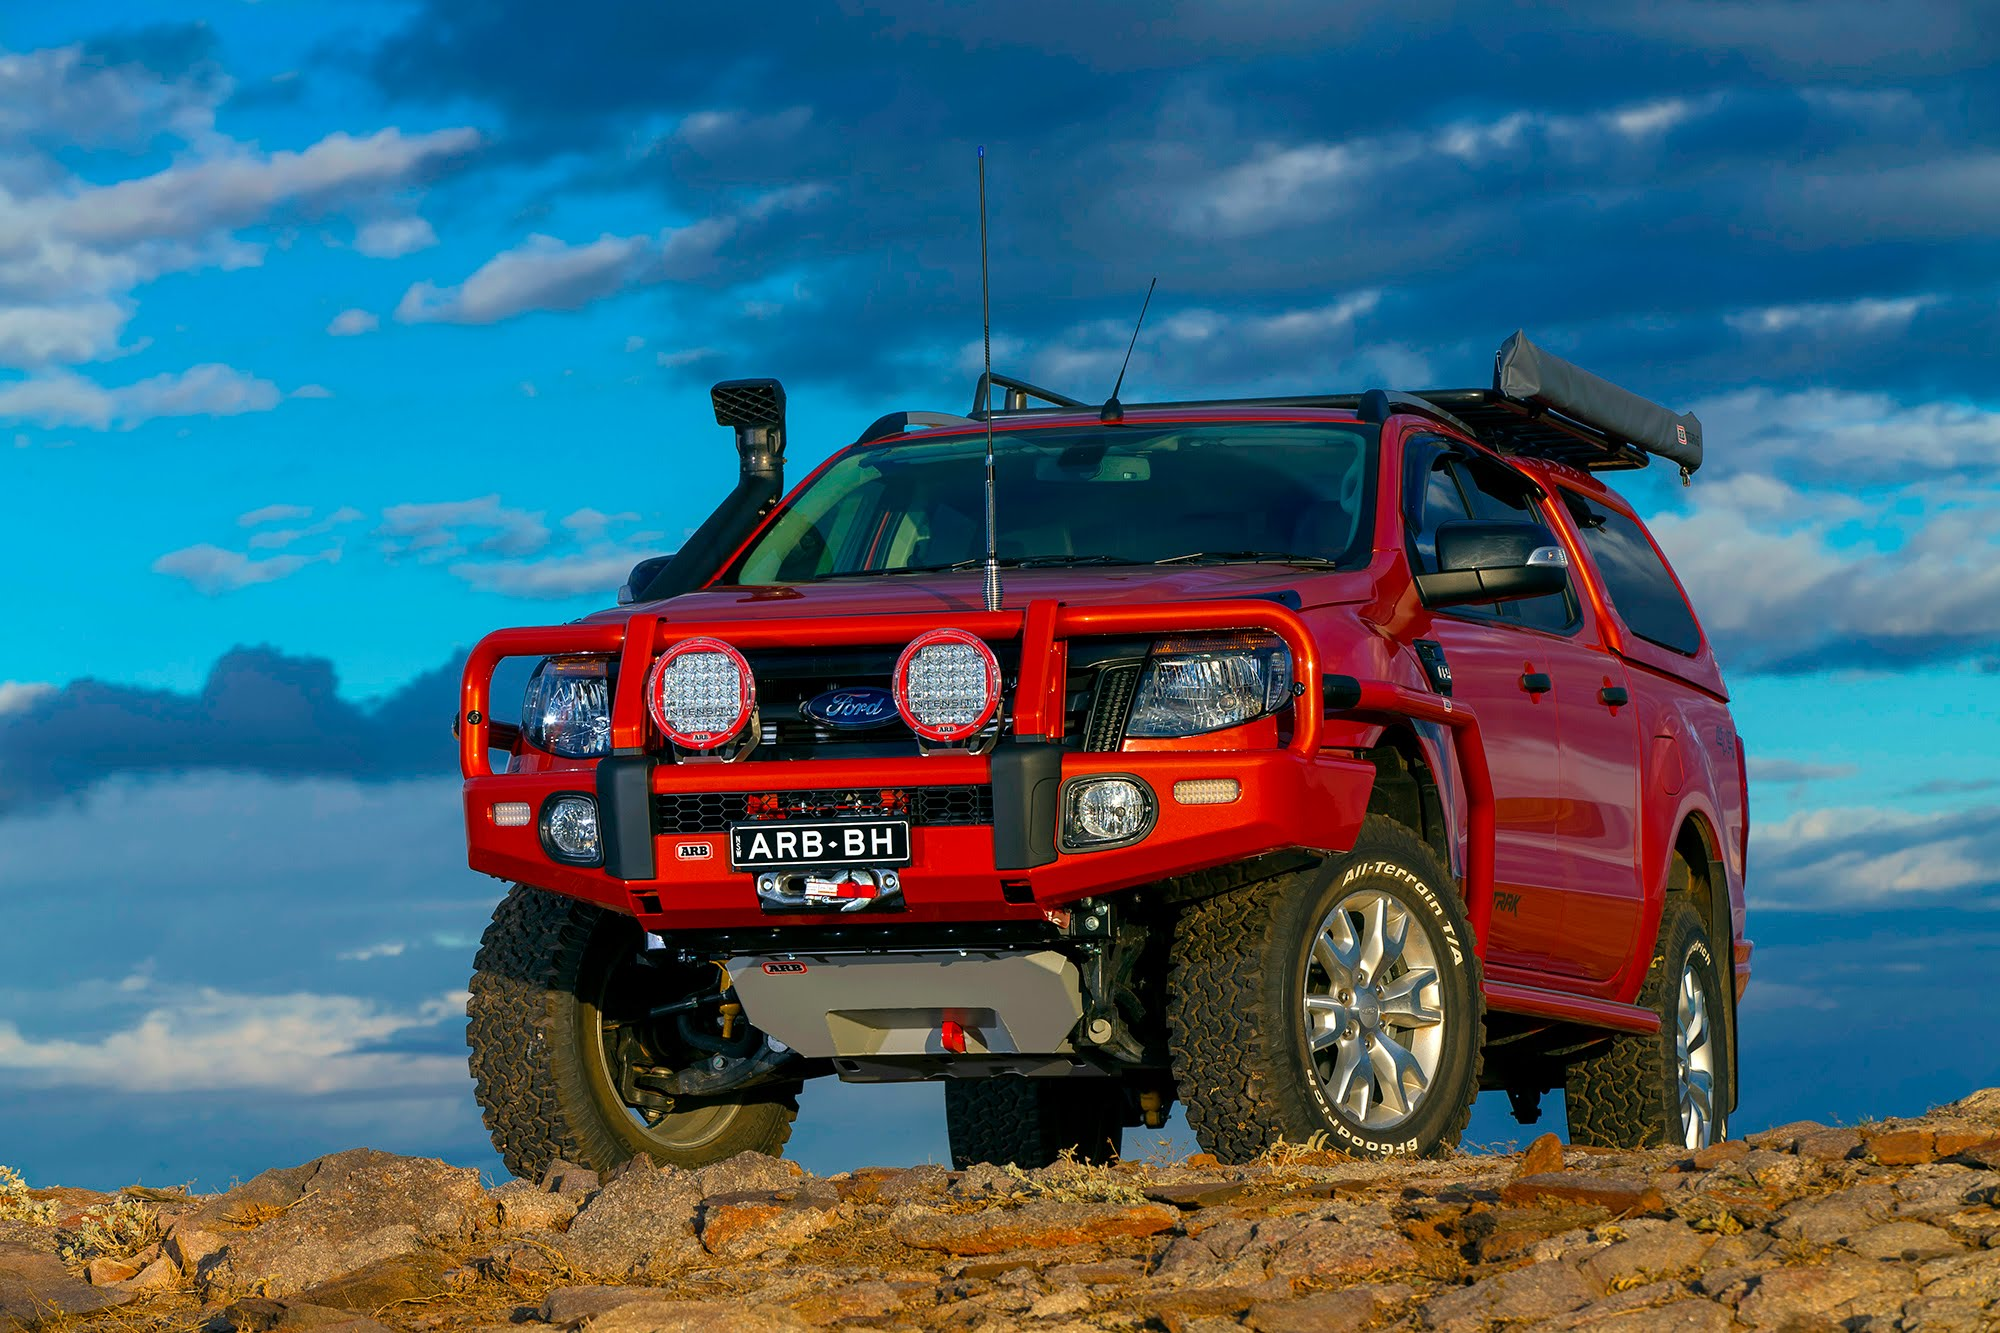 ARB Ranger. So. Much. Want.